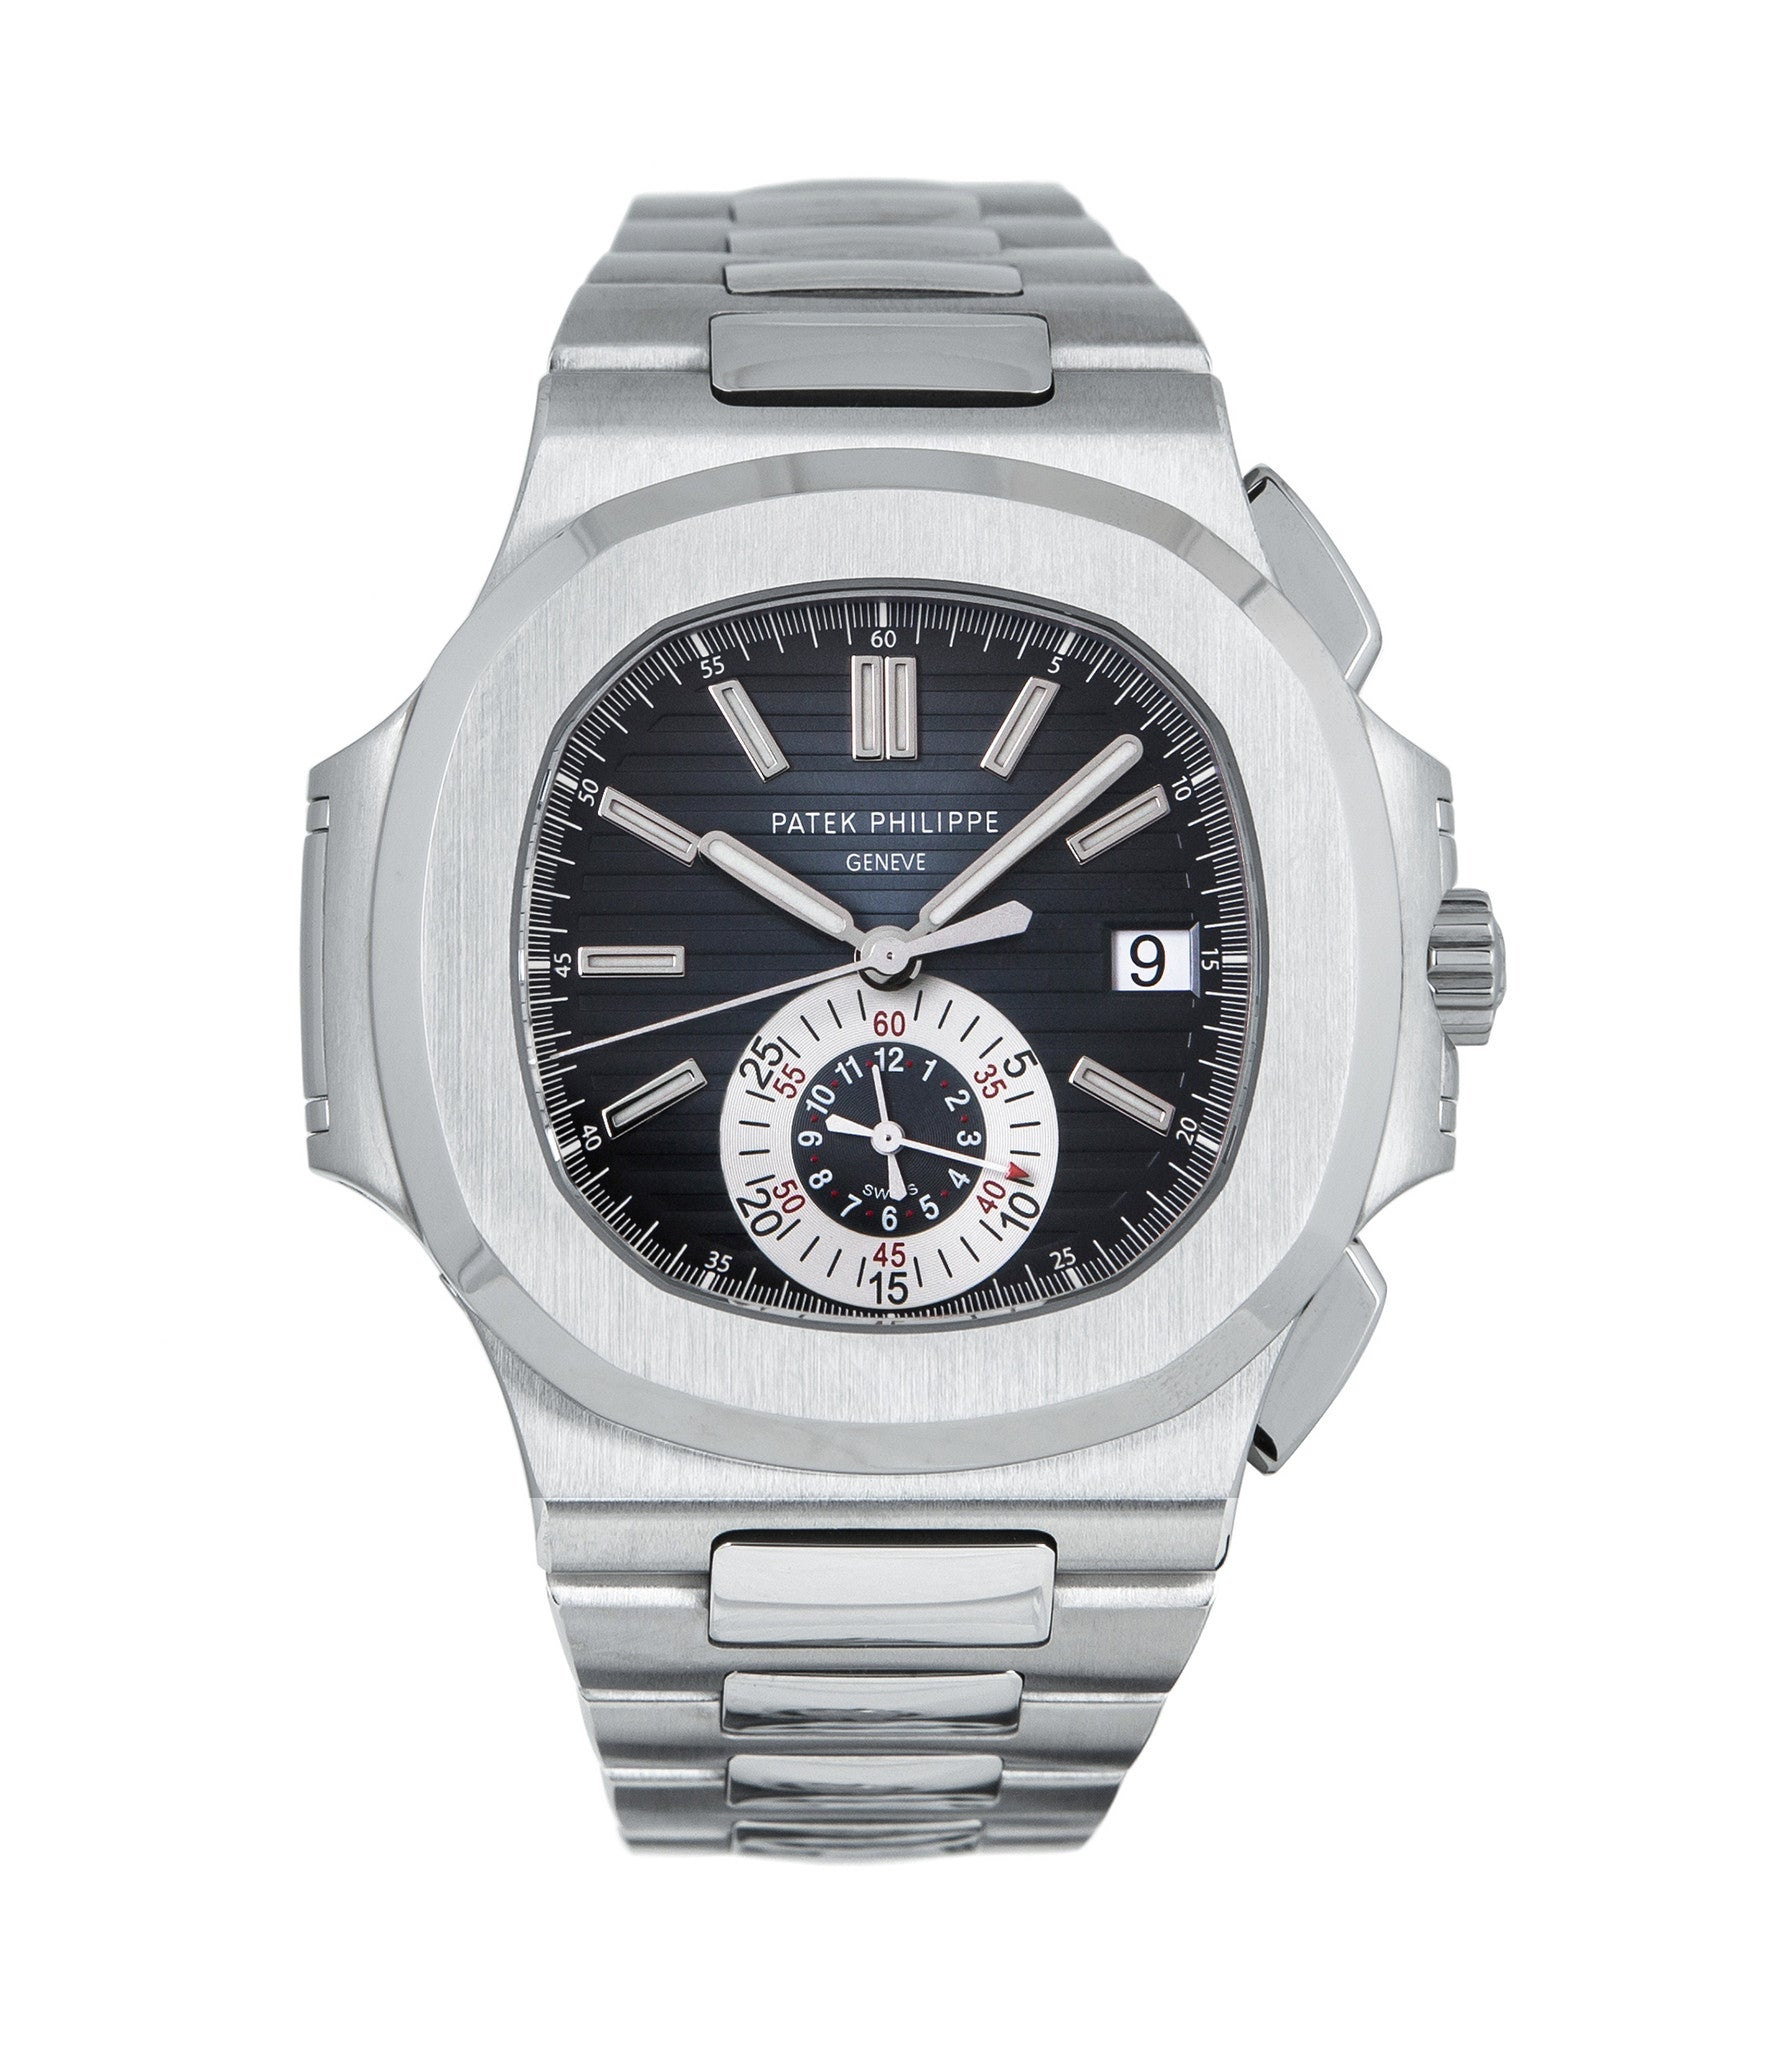 buy Patek Philippe Chronograph Nautilus 5980A discontinued rare steel watch online pre-owned from WATCH XCHANGE London for sale